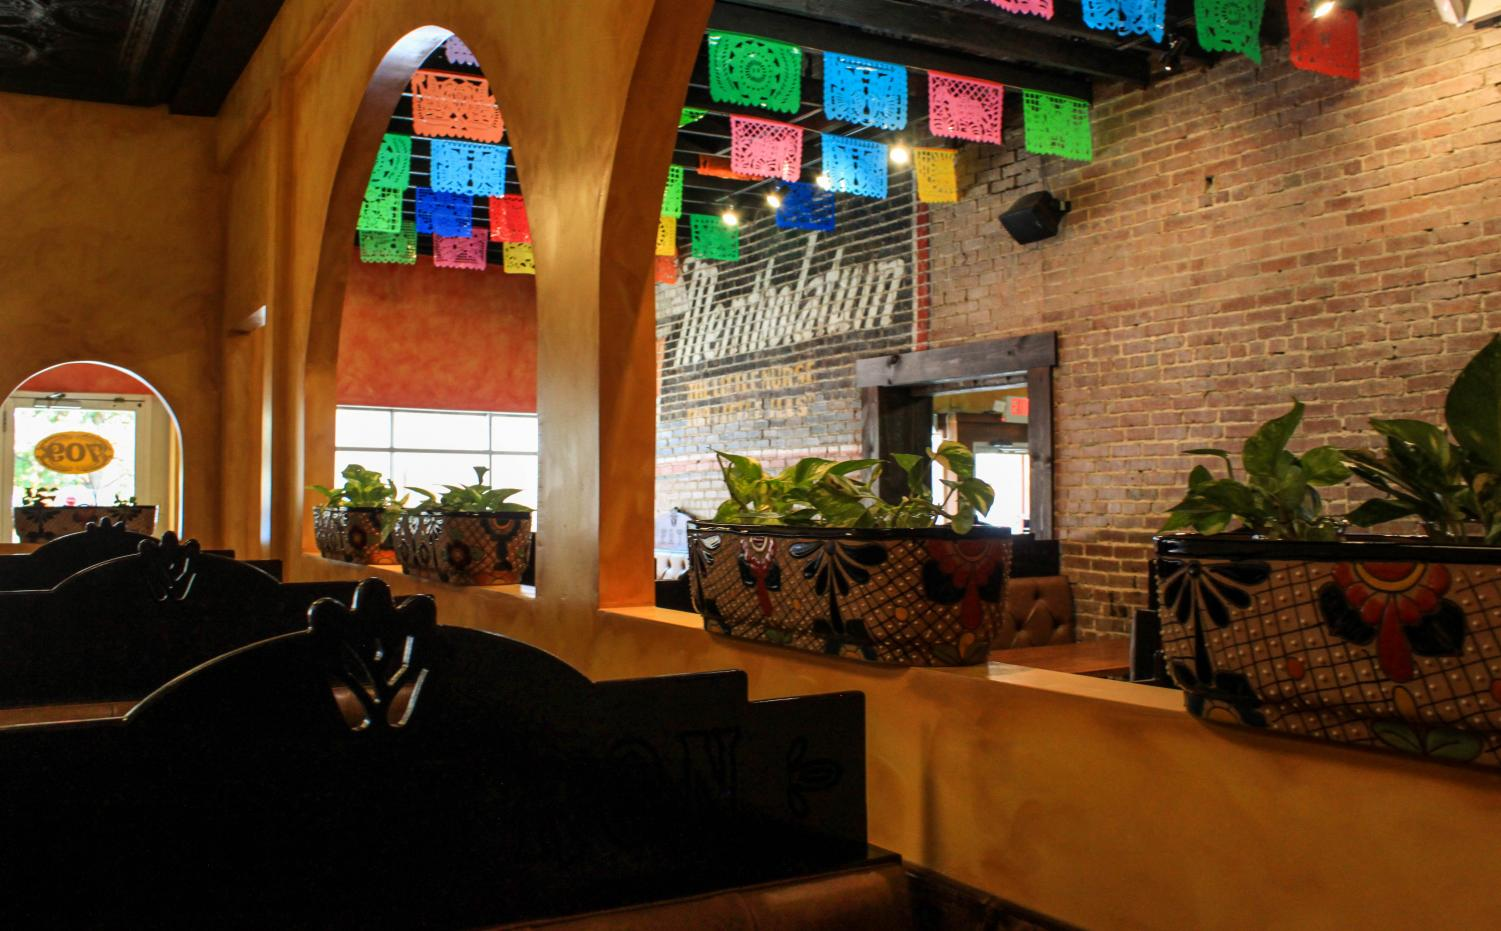 The newly added section of El Patron embraces its inviting setting. The expansion allows for more people to enjoy the exceptional food and service provided.